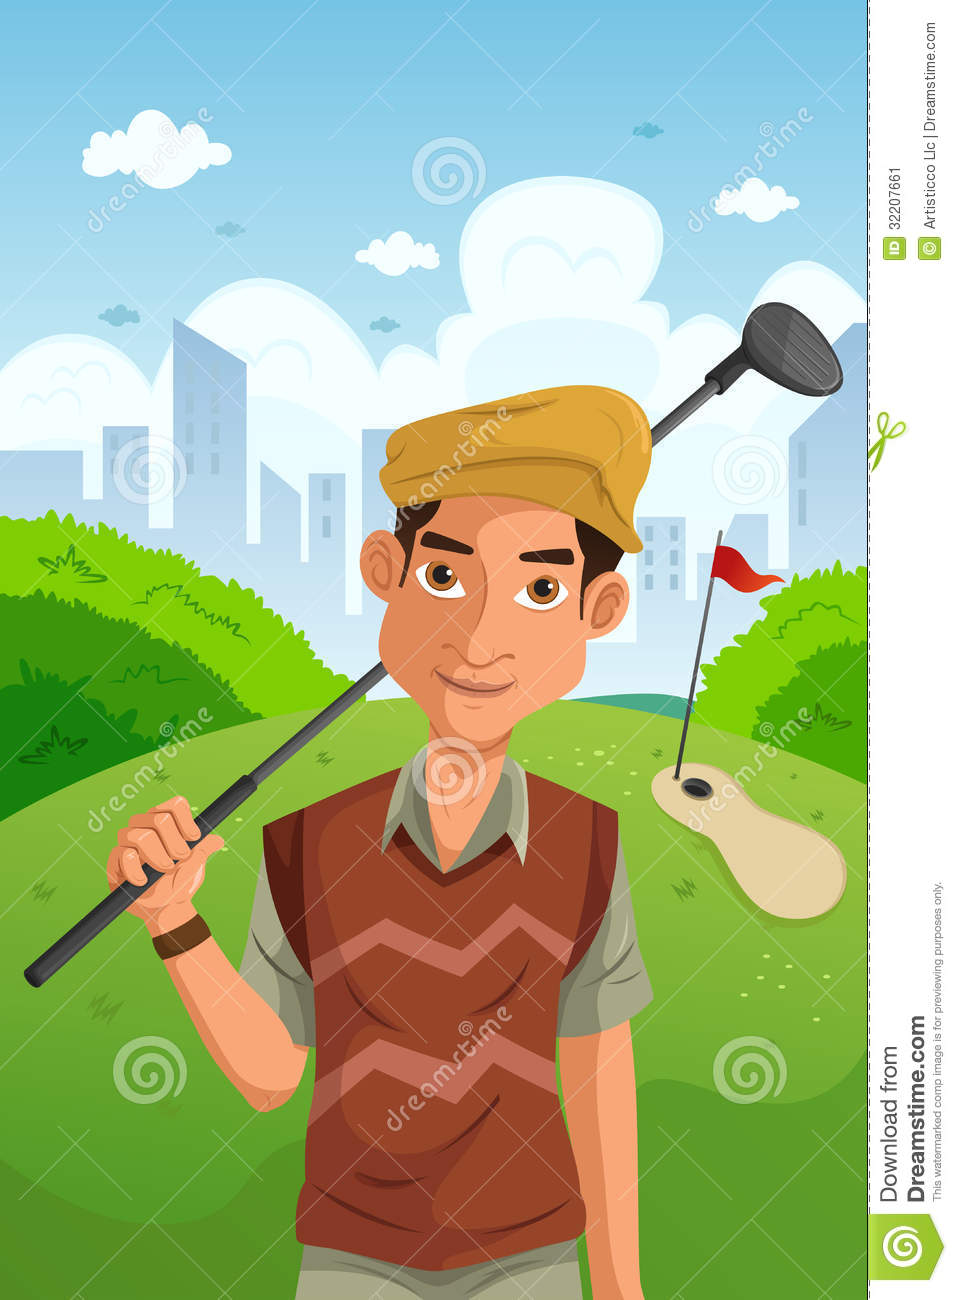 Man Playing Golf Stock Vector Illustration Of Clipart 32207661